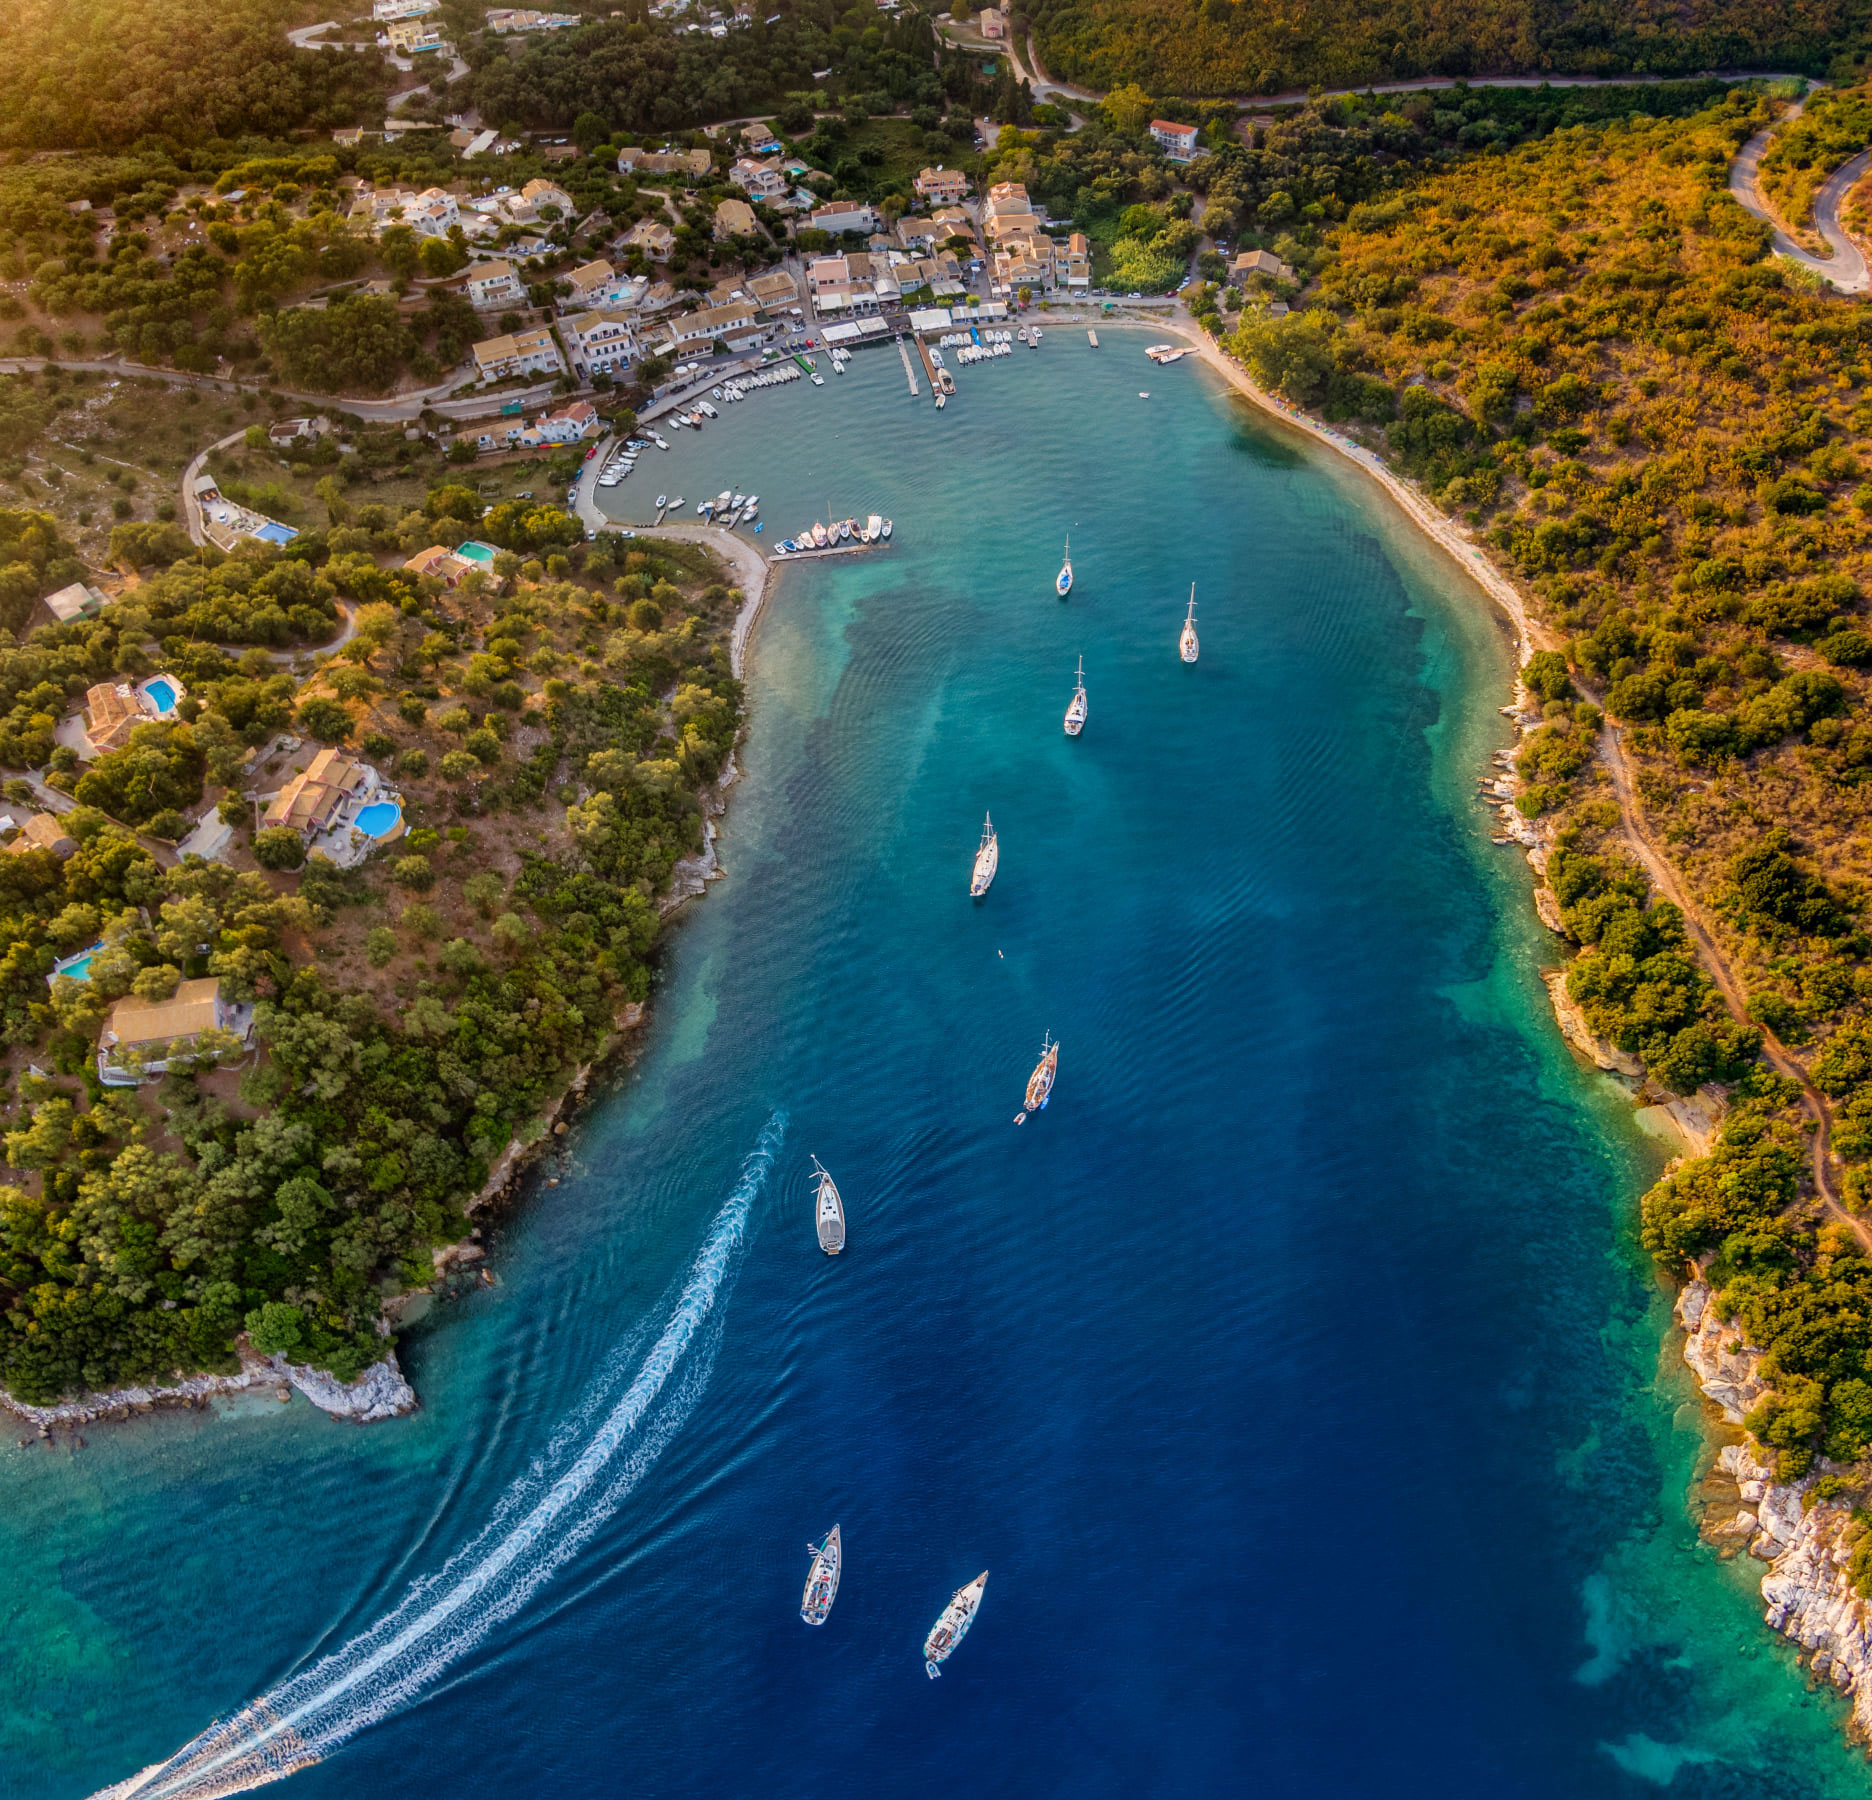 Aerial View of Agios Stefanos 2020